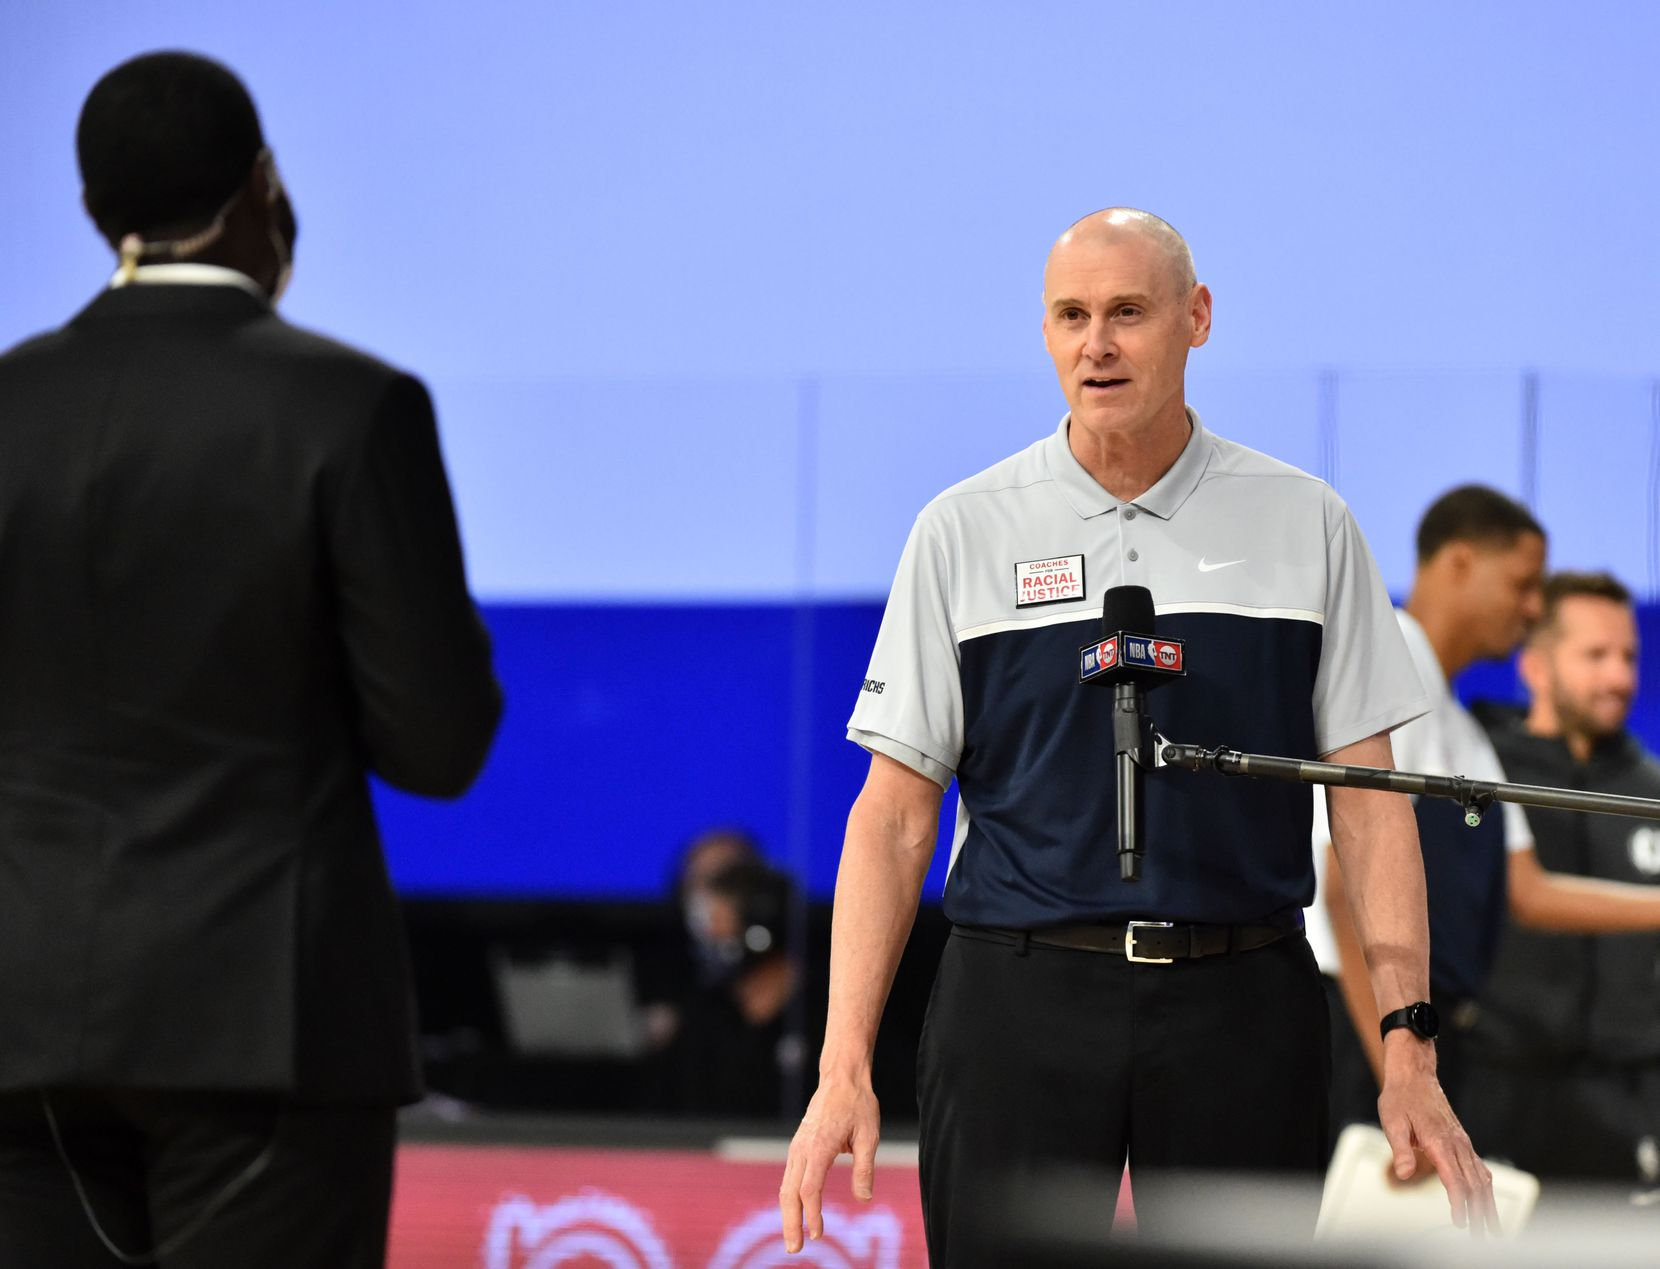 Orlando, FL - JULY 28: Mavericks head coach Rick Carlisle is interviewed during a scrimmage against the 76ers on July 28, 2020, at HP Field House at ESPN Wide World of Sports in Orlando, Fla.